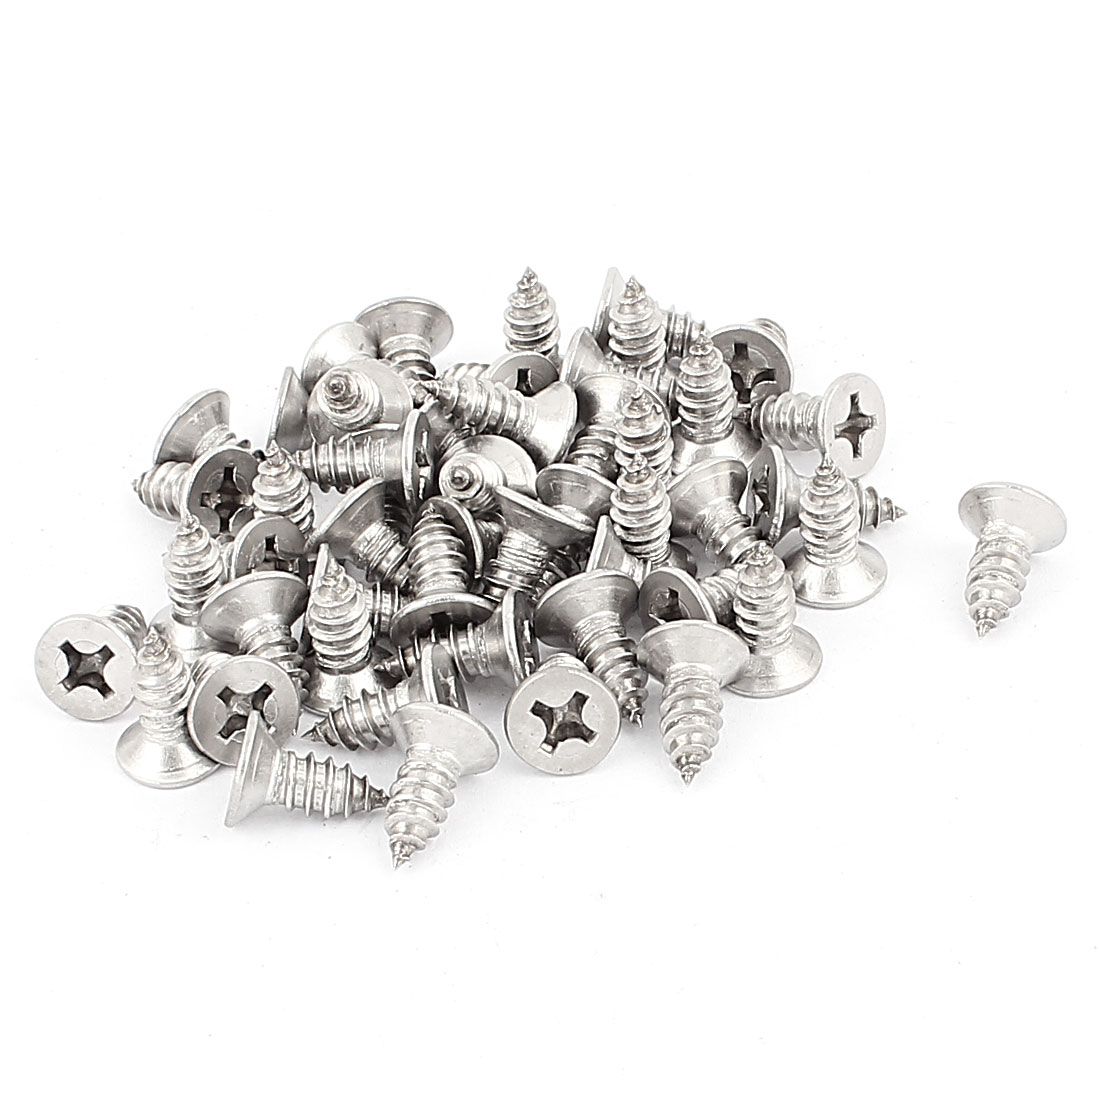 6.3mm x 16mm Flat Head Phillips Self Tapping Screw Fasteners Silver Tone 50 Pcs